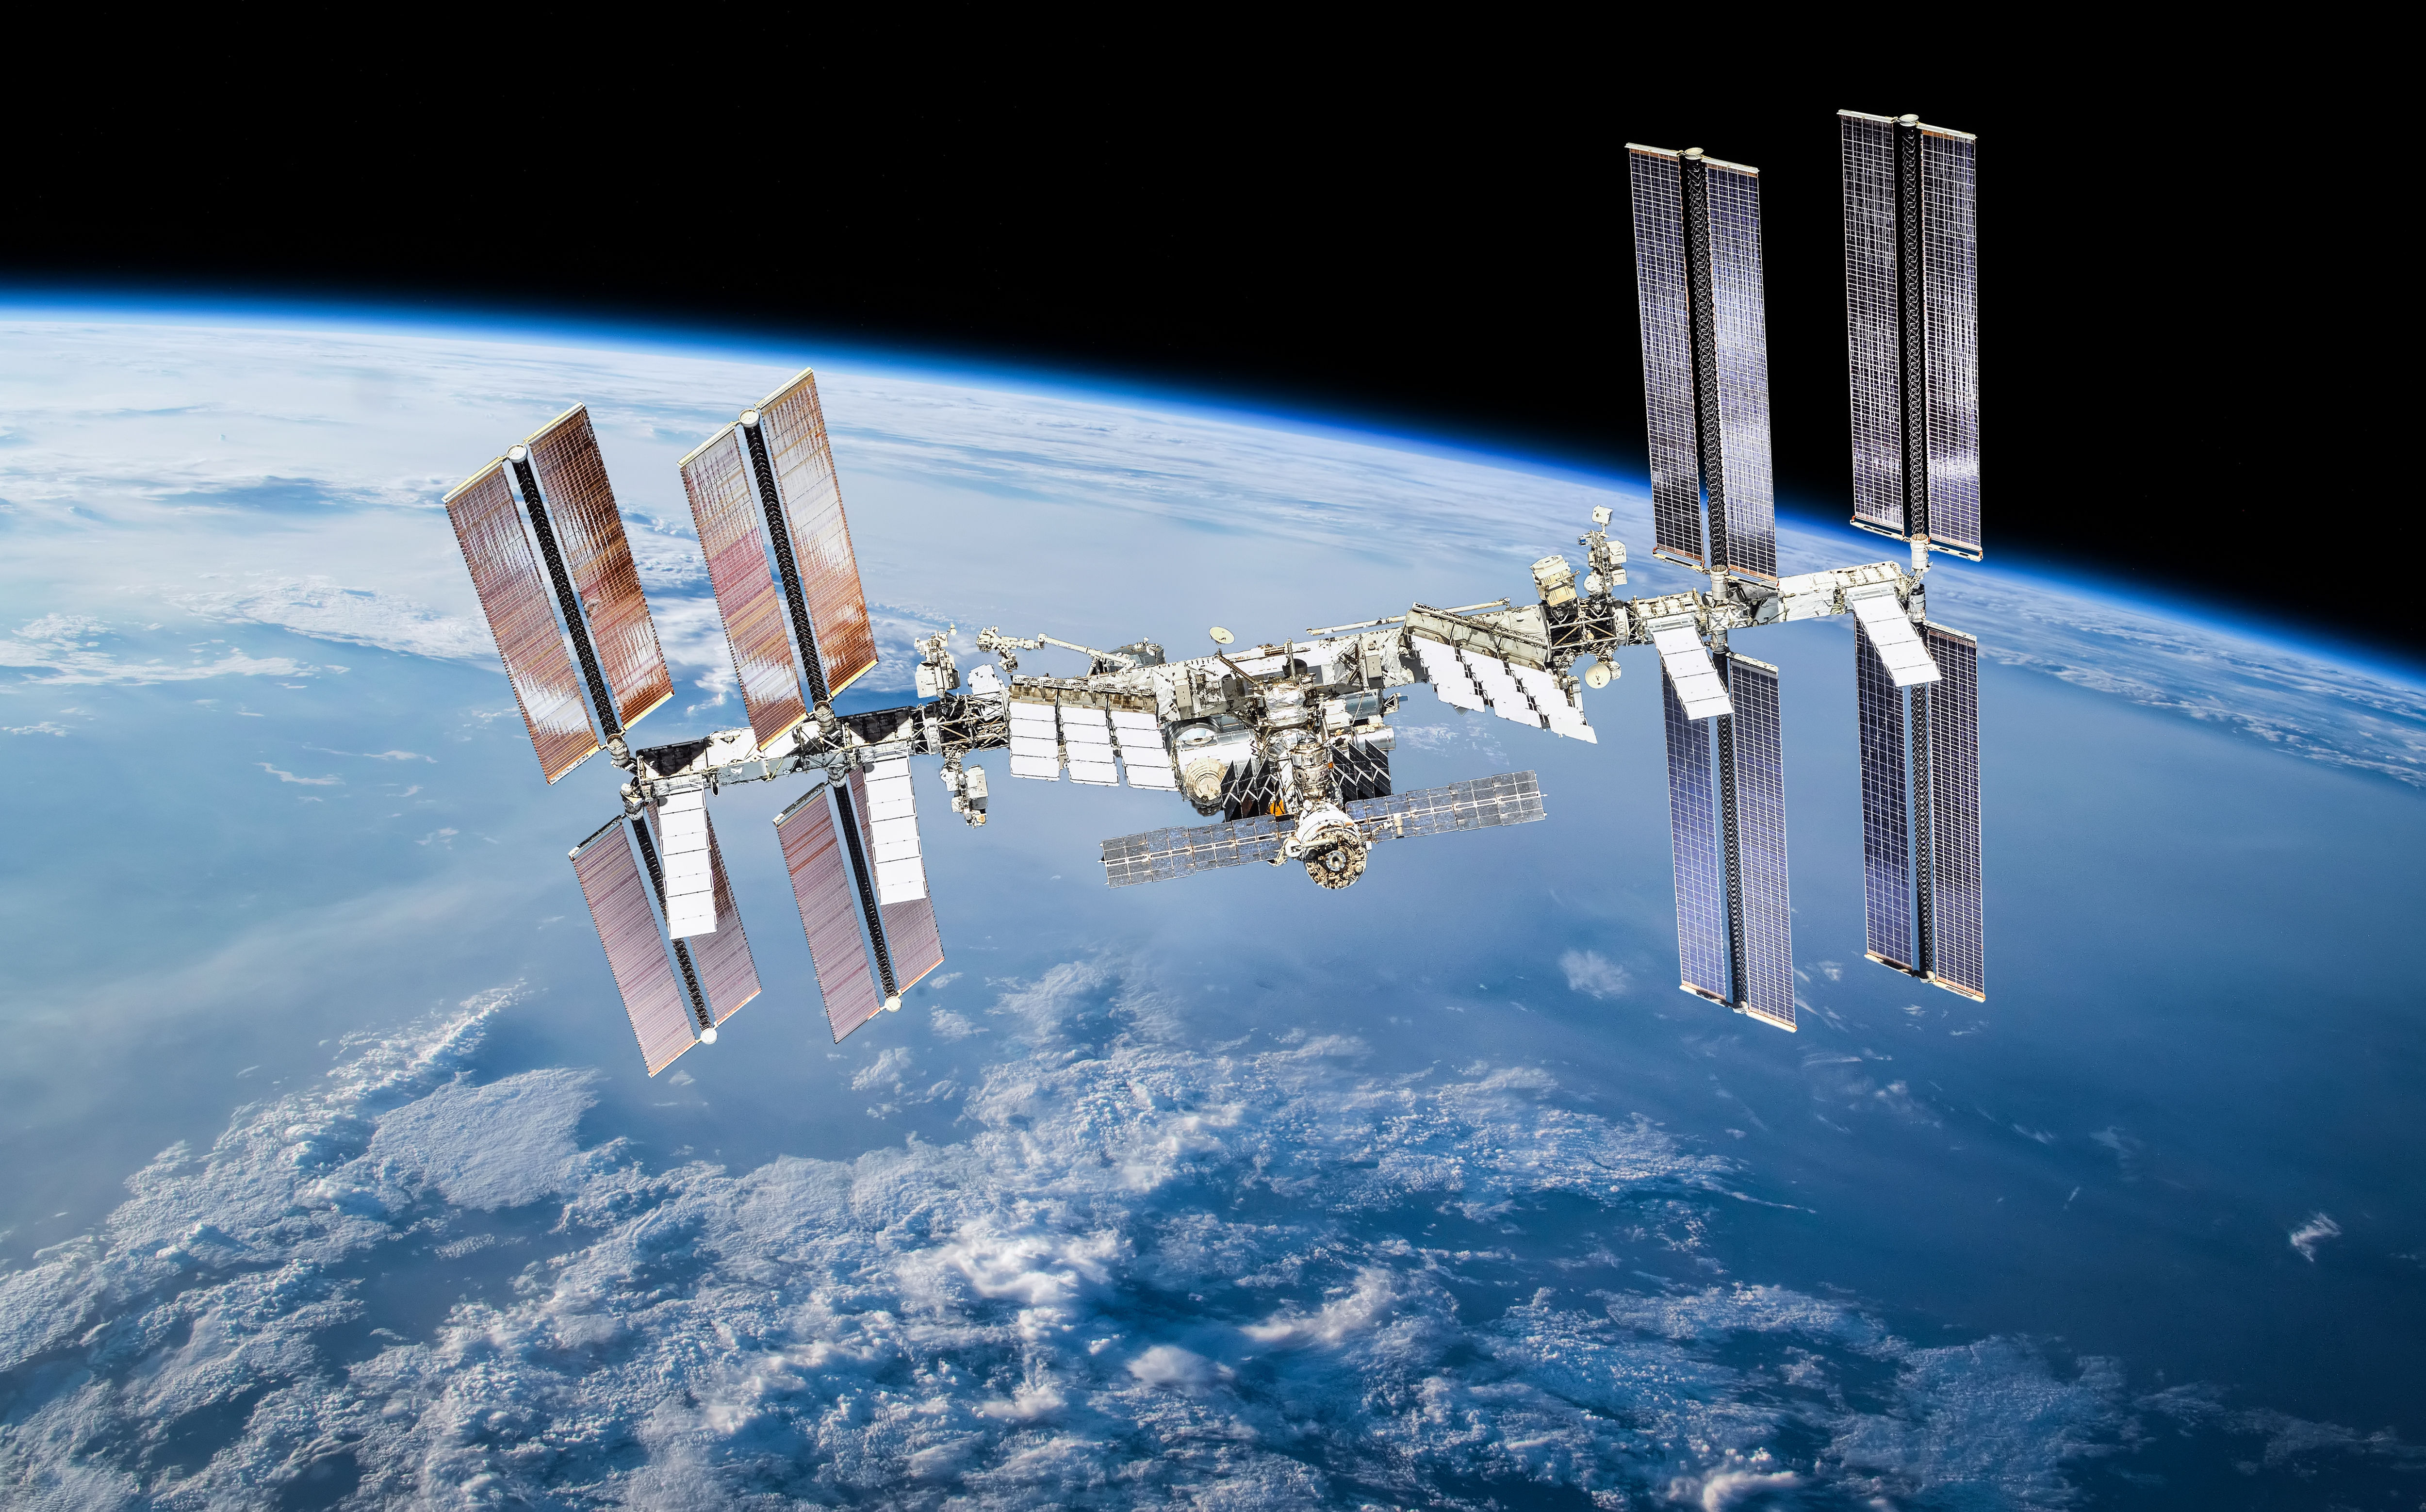 The International Space Station as it plies its rarefied orbit